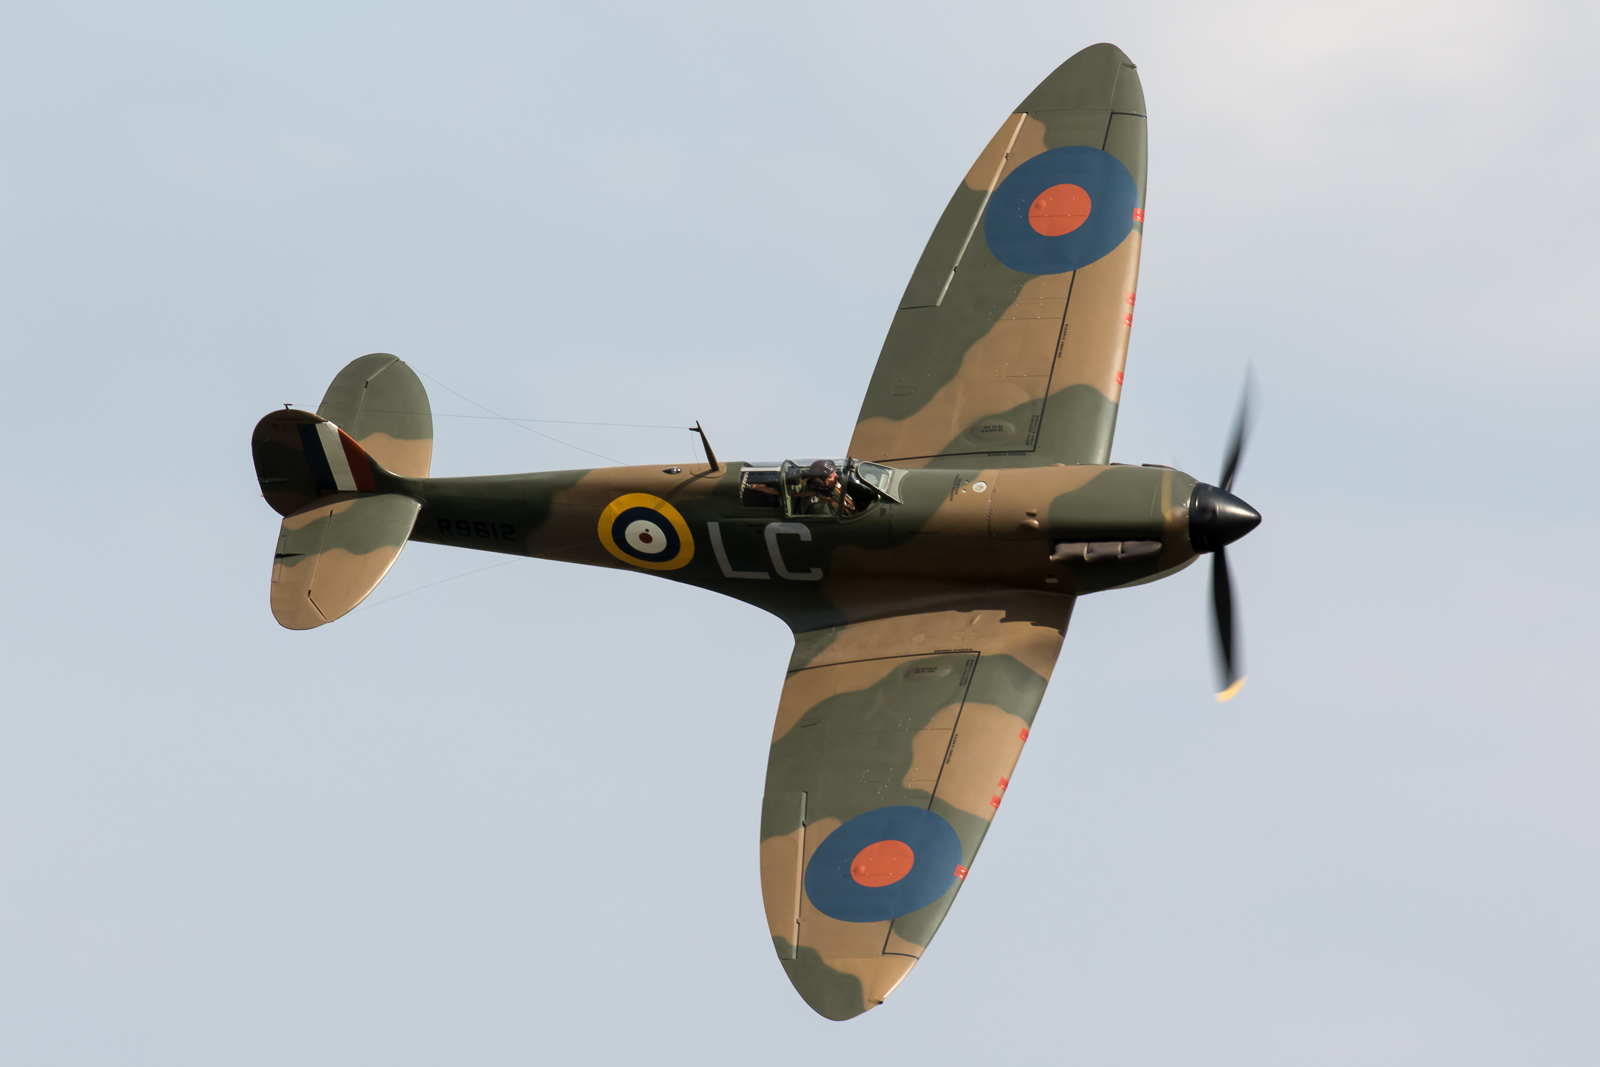 Consumer loyal to WWII royal aircraft: Spitfire in BMW